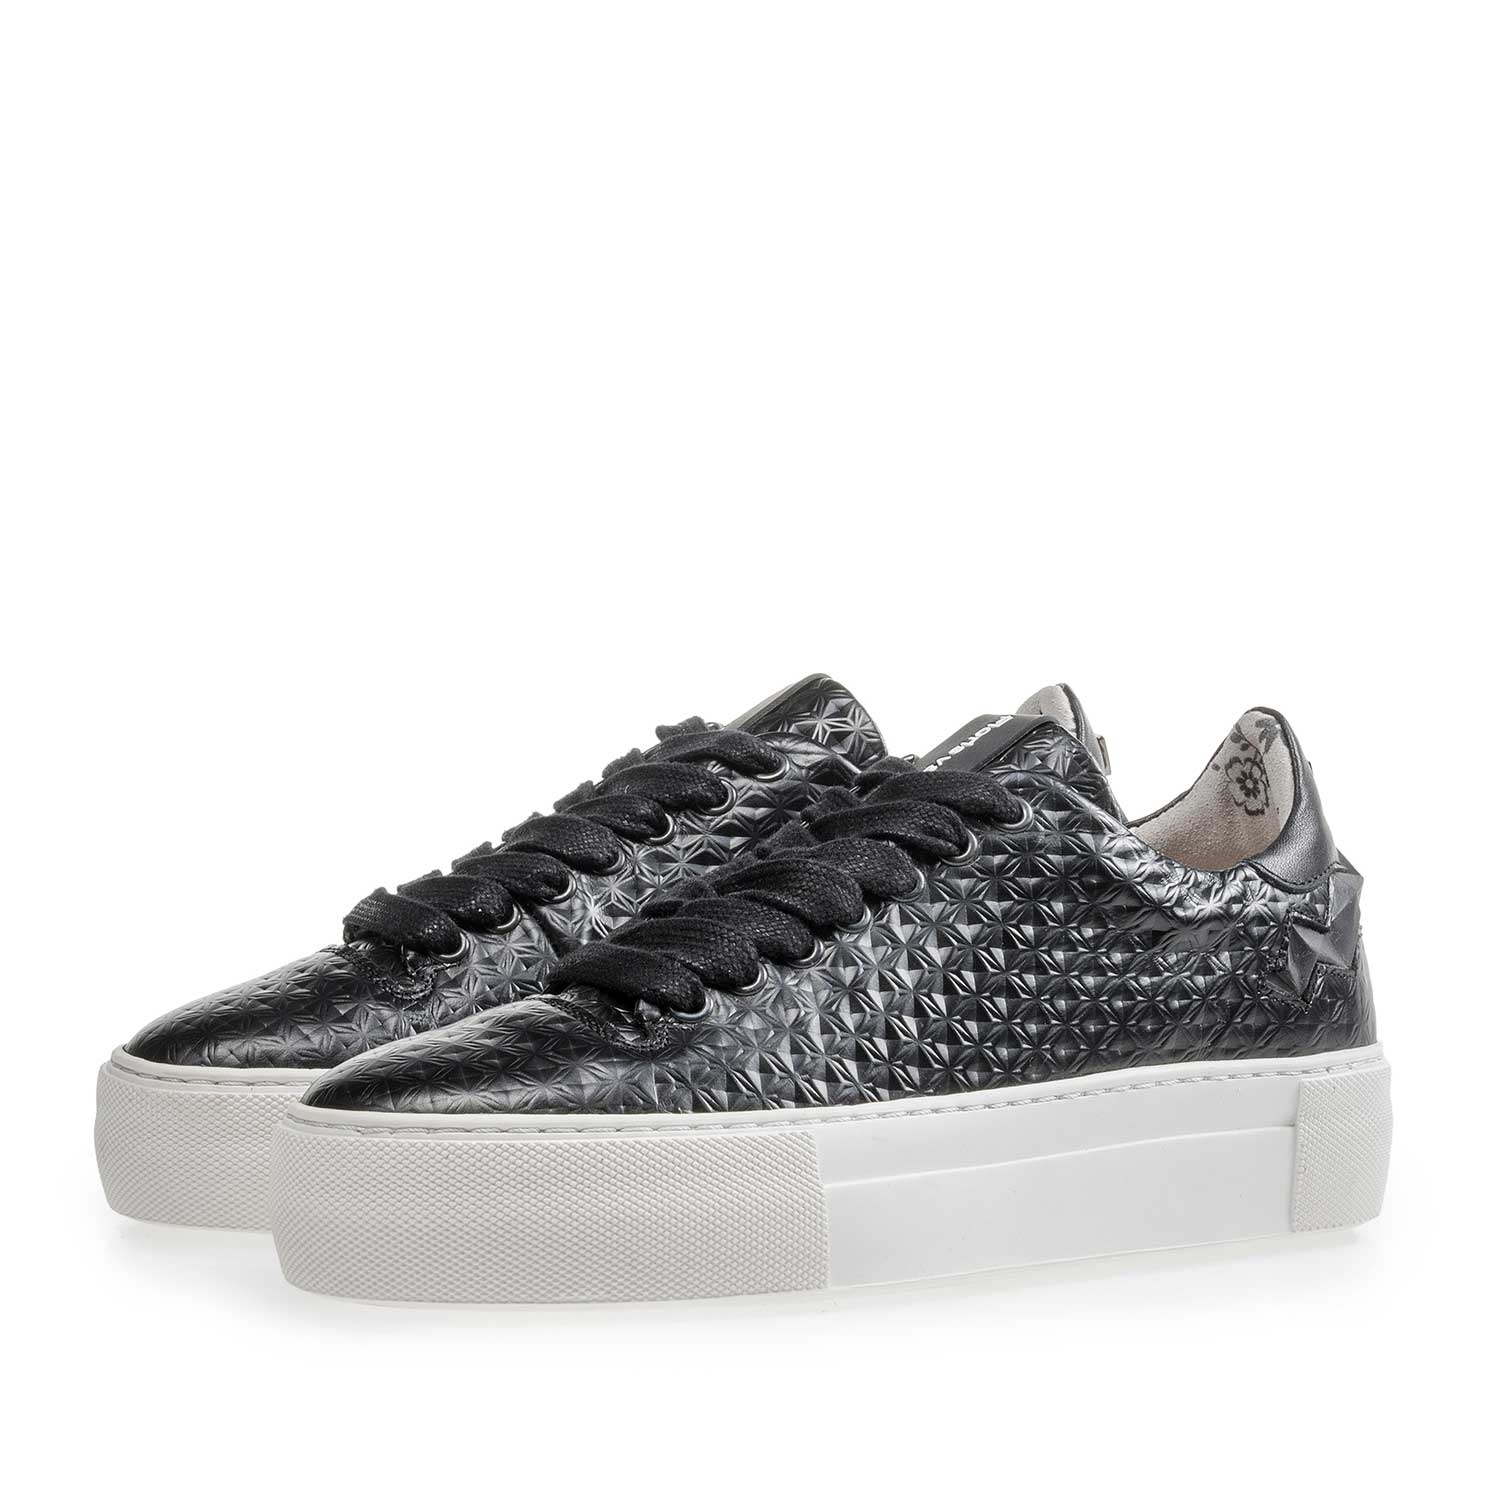 85234/01 - Black patterned leather sneaker